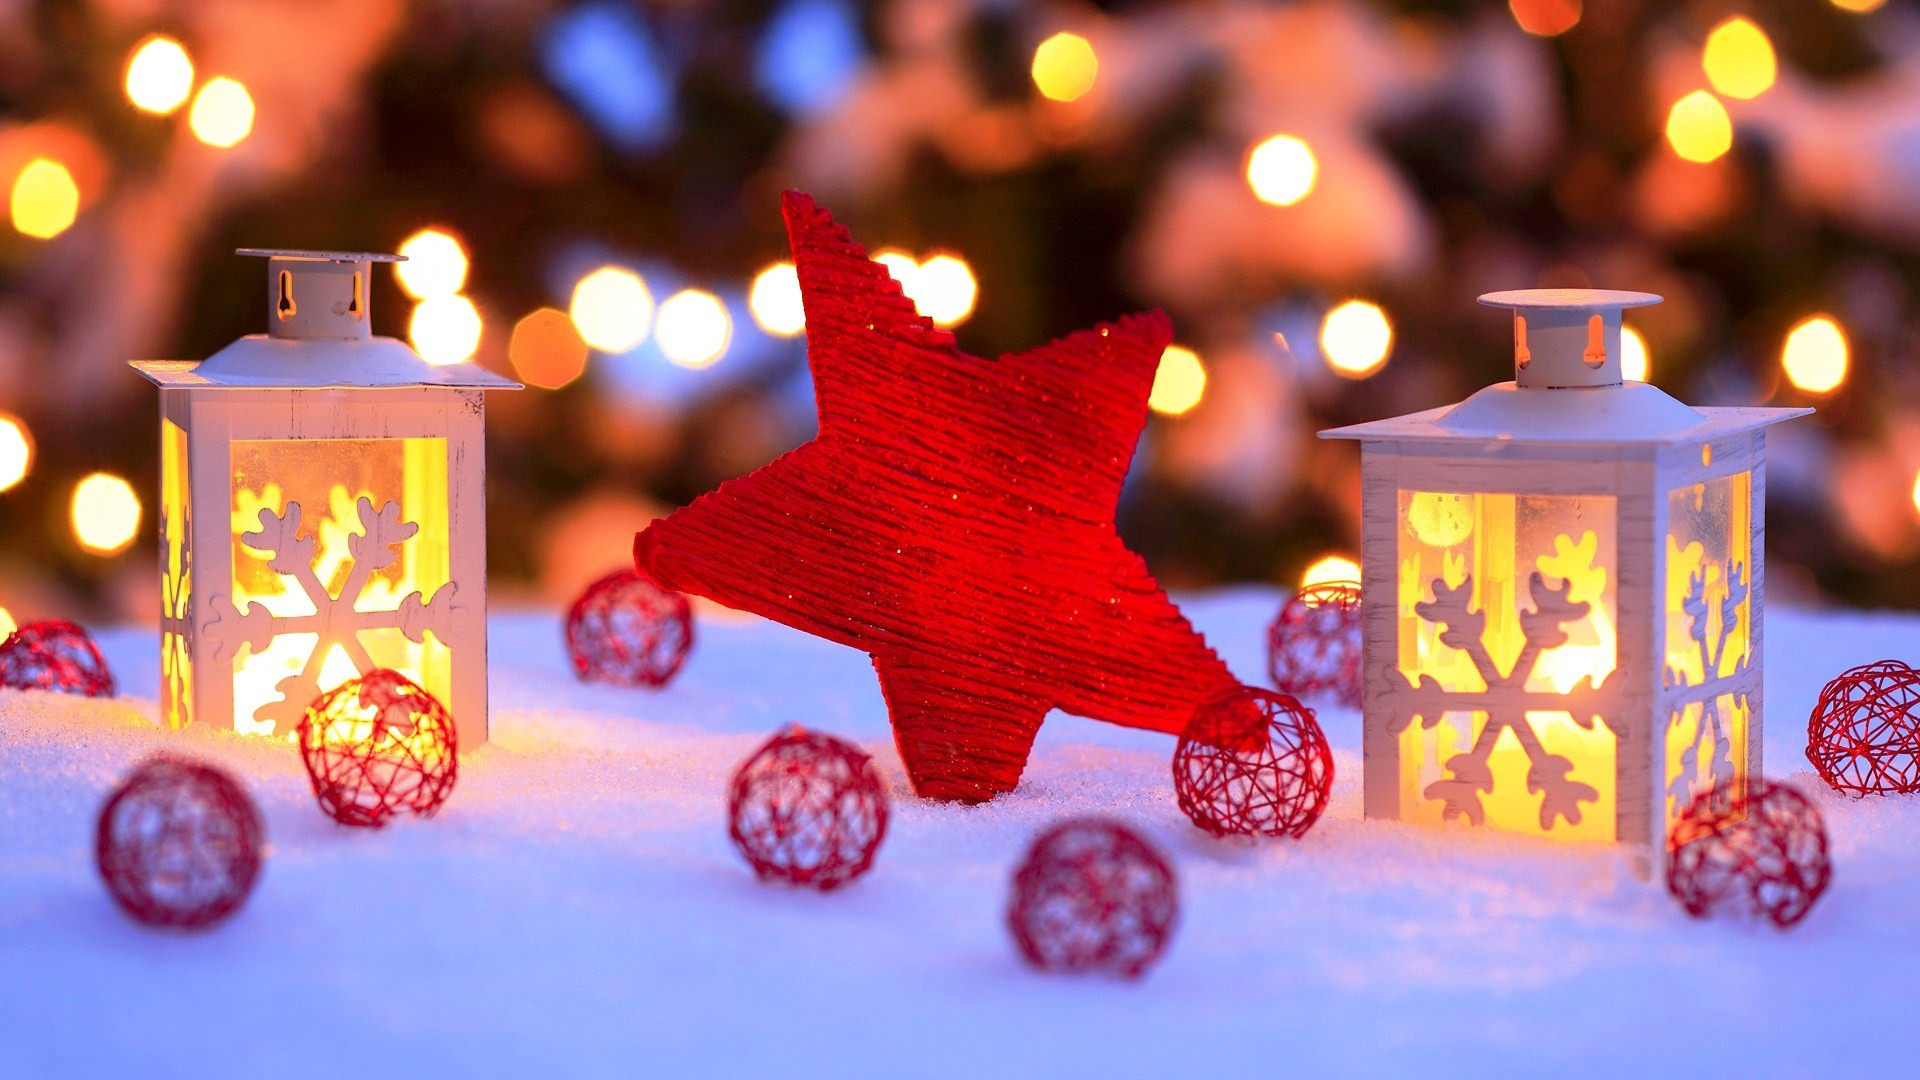 1920x1080 25 Best Colorful Christmas Wallpapers: 2014